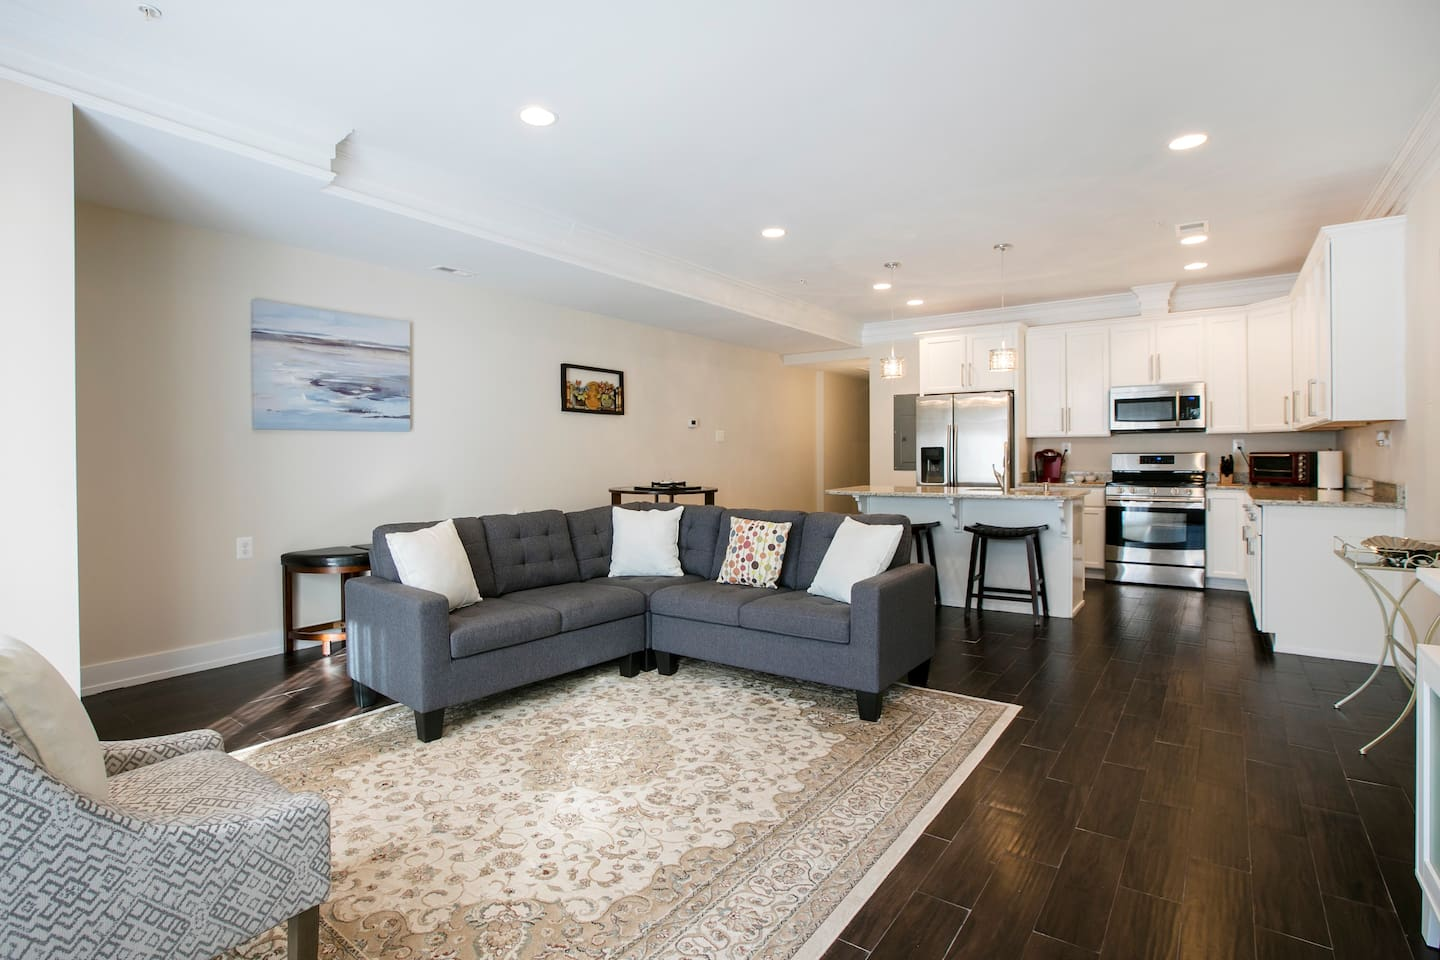 Condominium entrance and living room overview